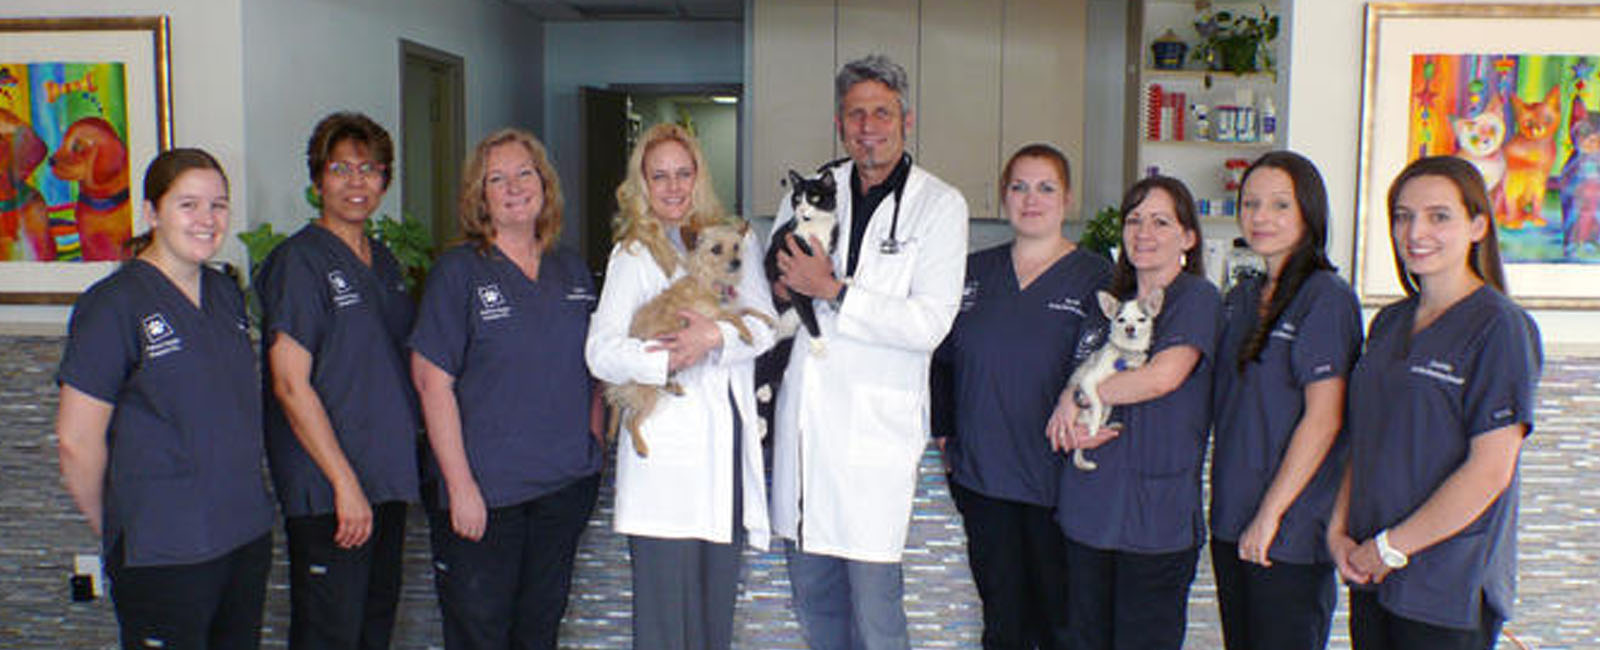 Homepage Team Picture of VCA Animal Health Animal Hospital